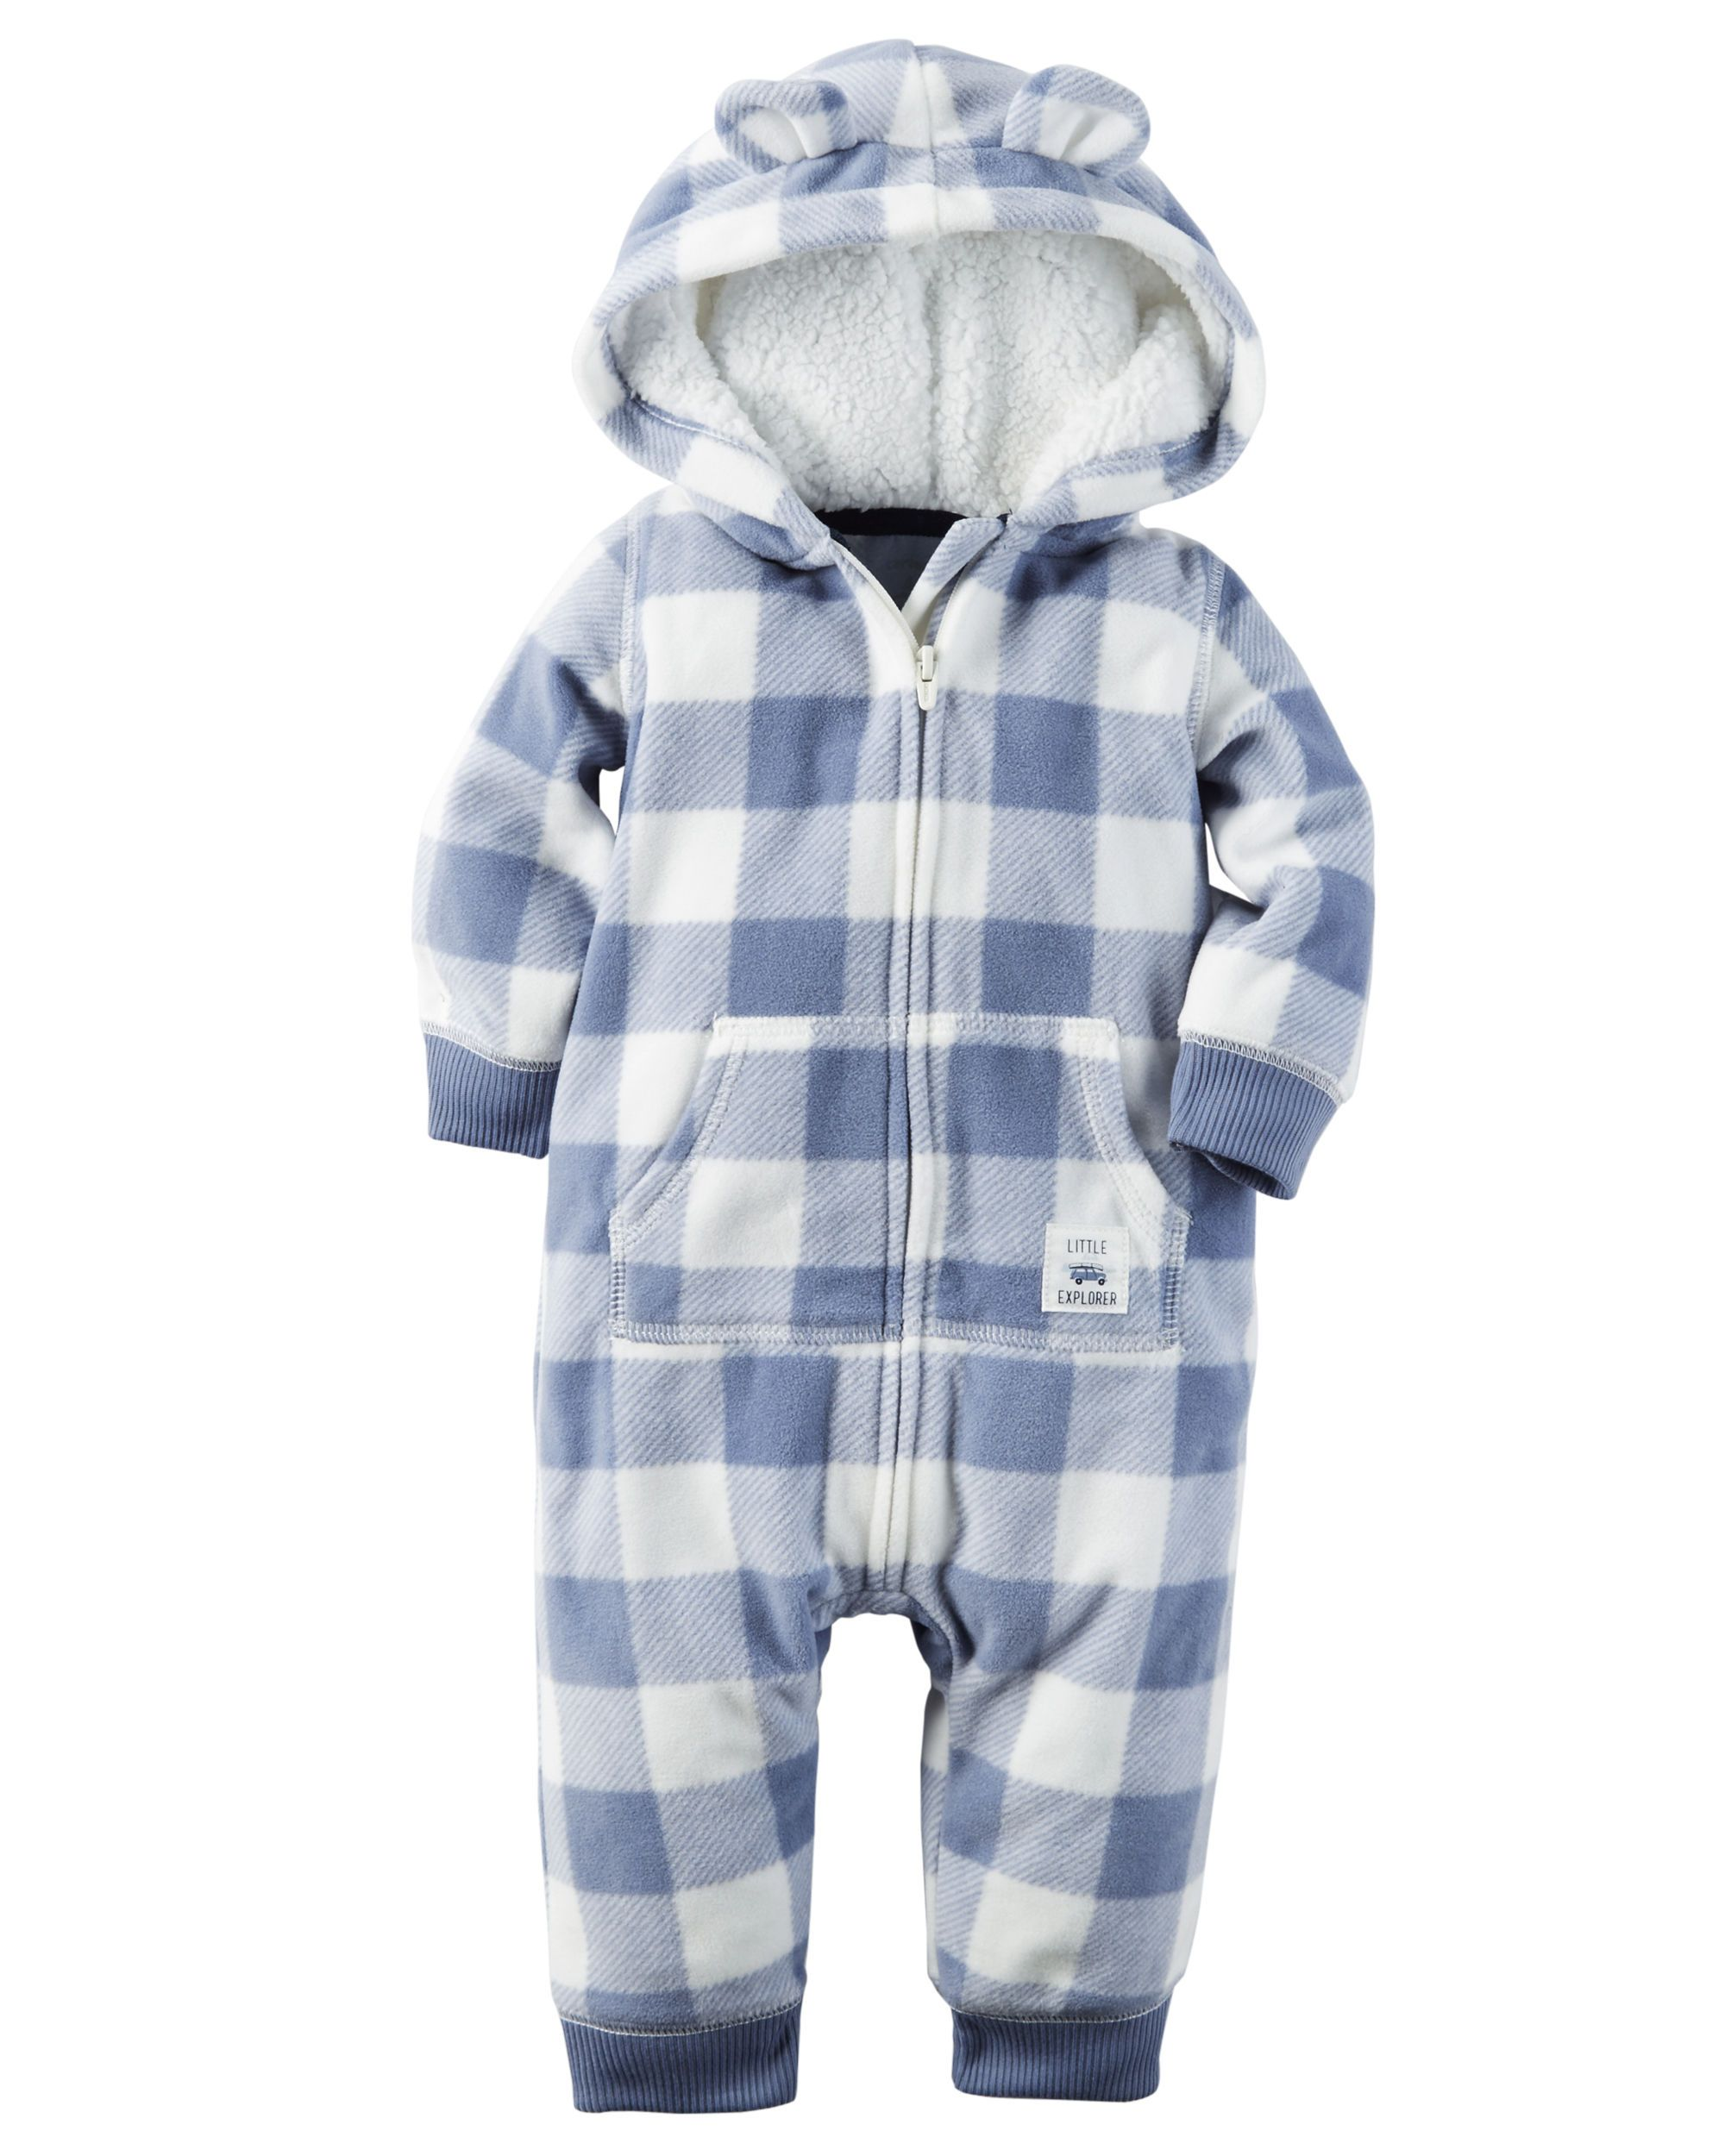 0e9fbc7a96bf Hooded Fleece Jumpsuit from Carters.com. Shop clothing   accessories ...